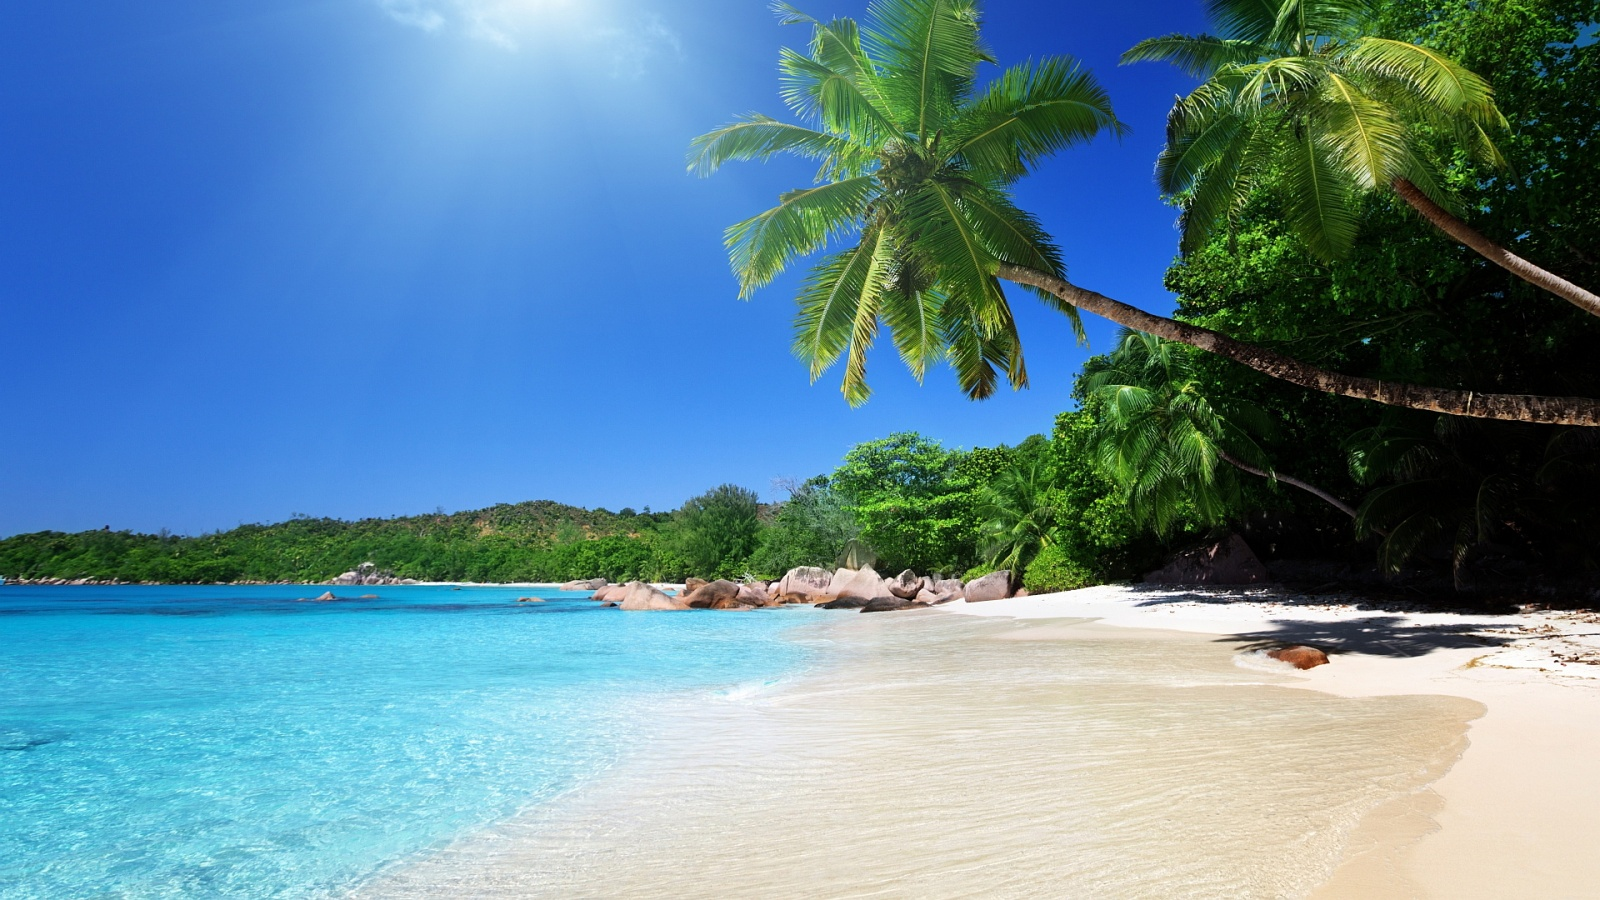 Awesome Caribbean Wallpaper